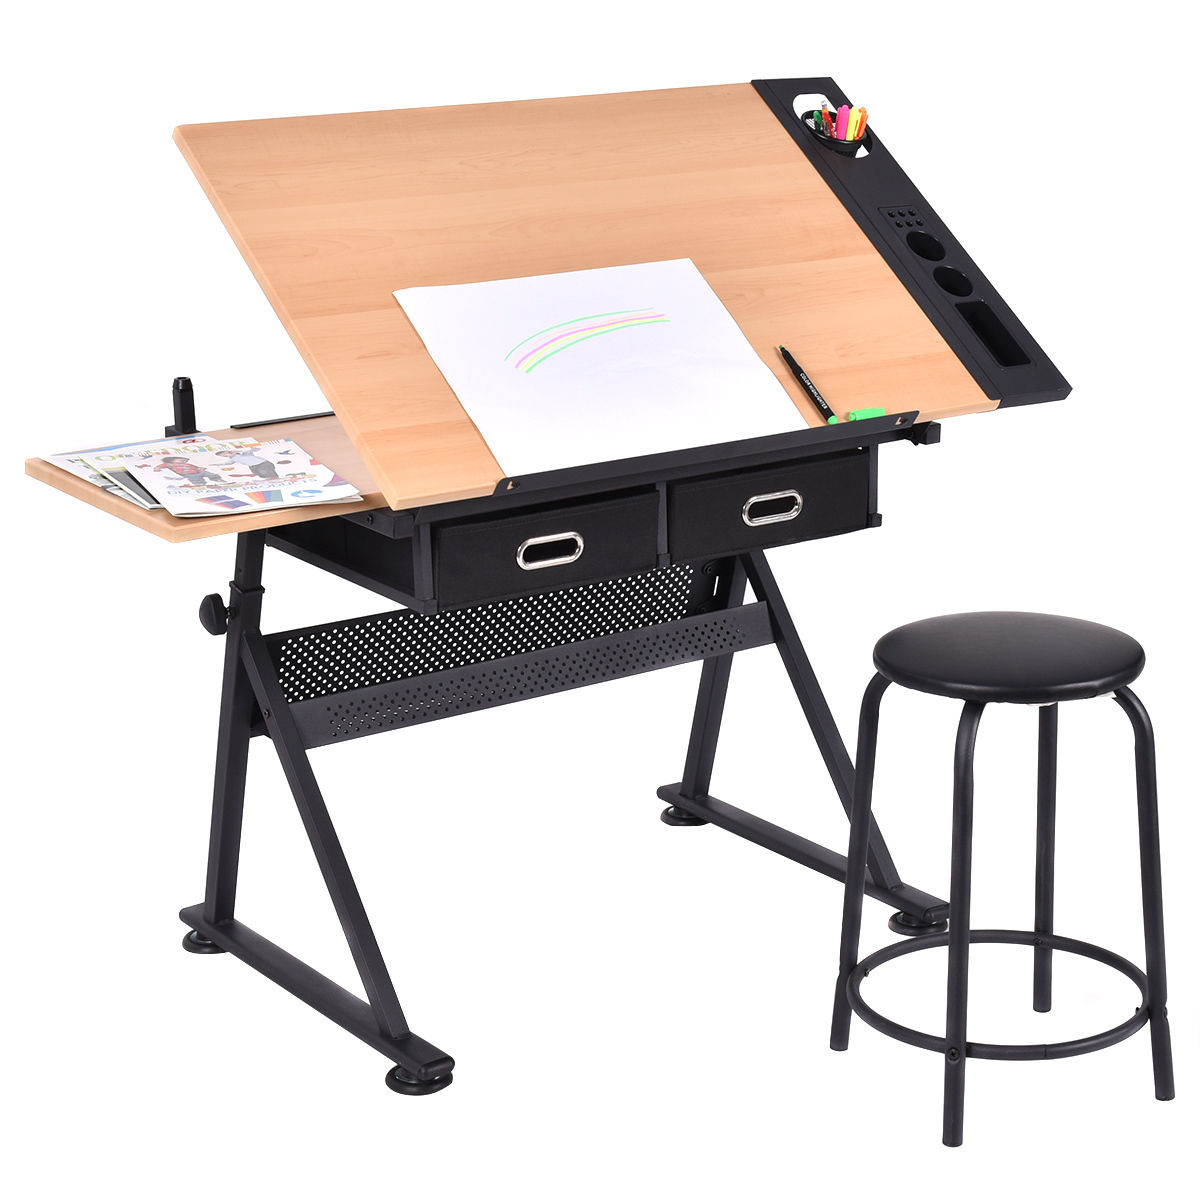 Brilliant Us 119 99 Giantex Adjustable Drafting Table Set Modern Art Craft Drawing Desk Art Hobby With Stool And Drawers Draw Furniture Hw52822 In Laptop Home Interior And Landscaping Analalmasignezvosmurscom